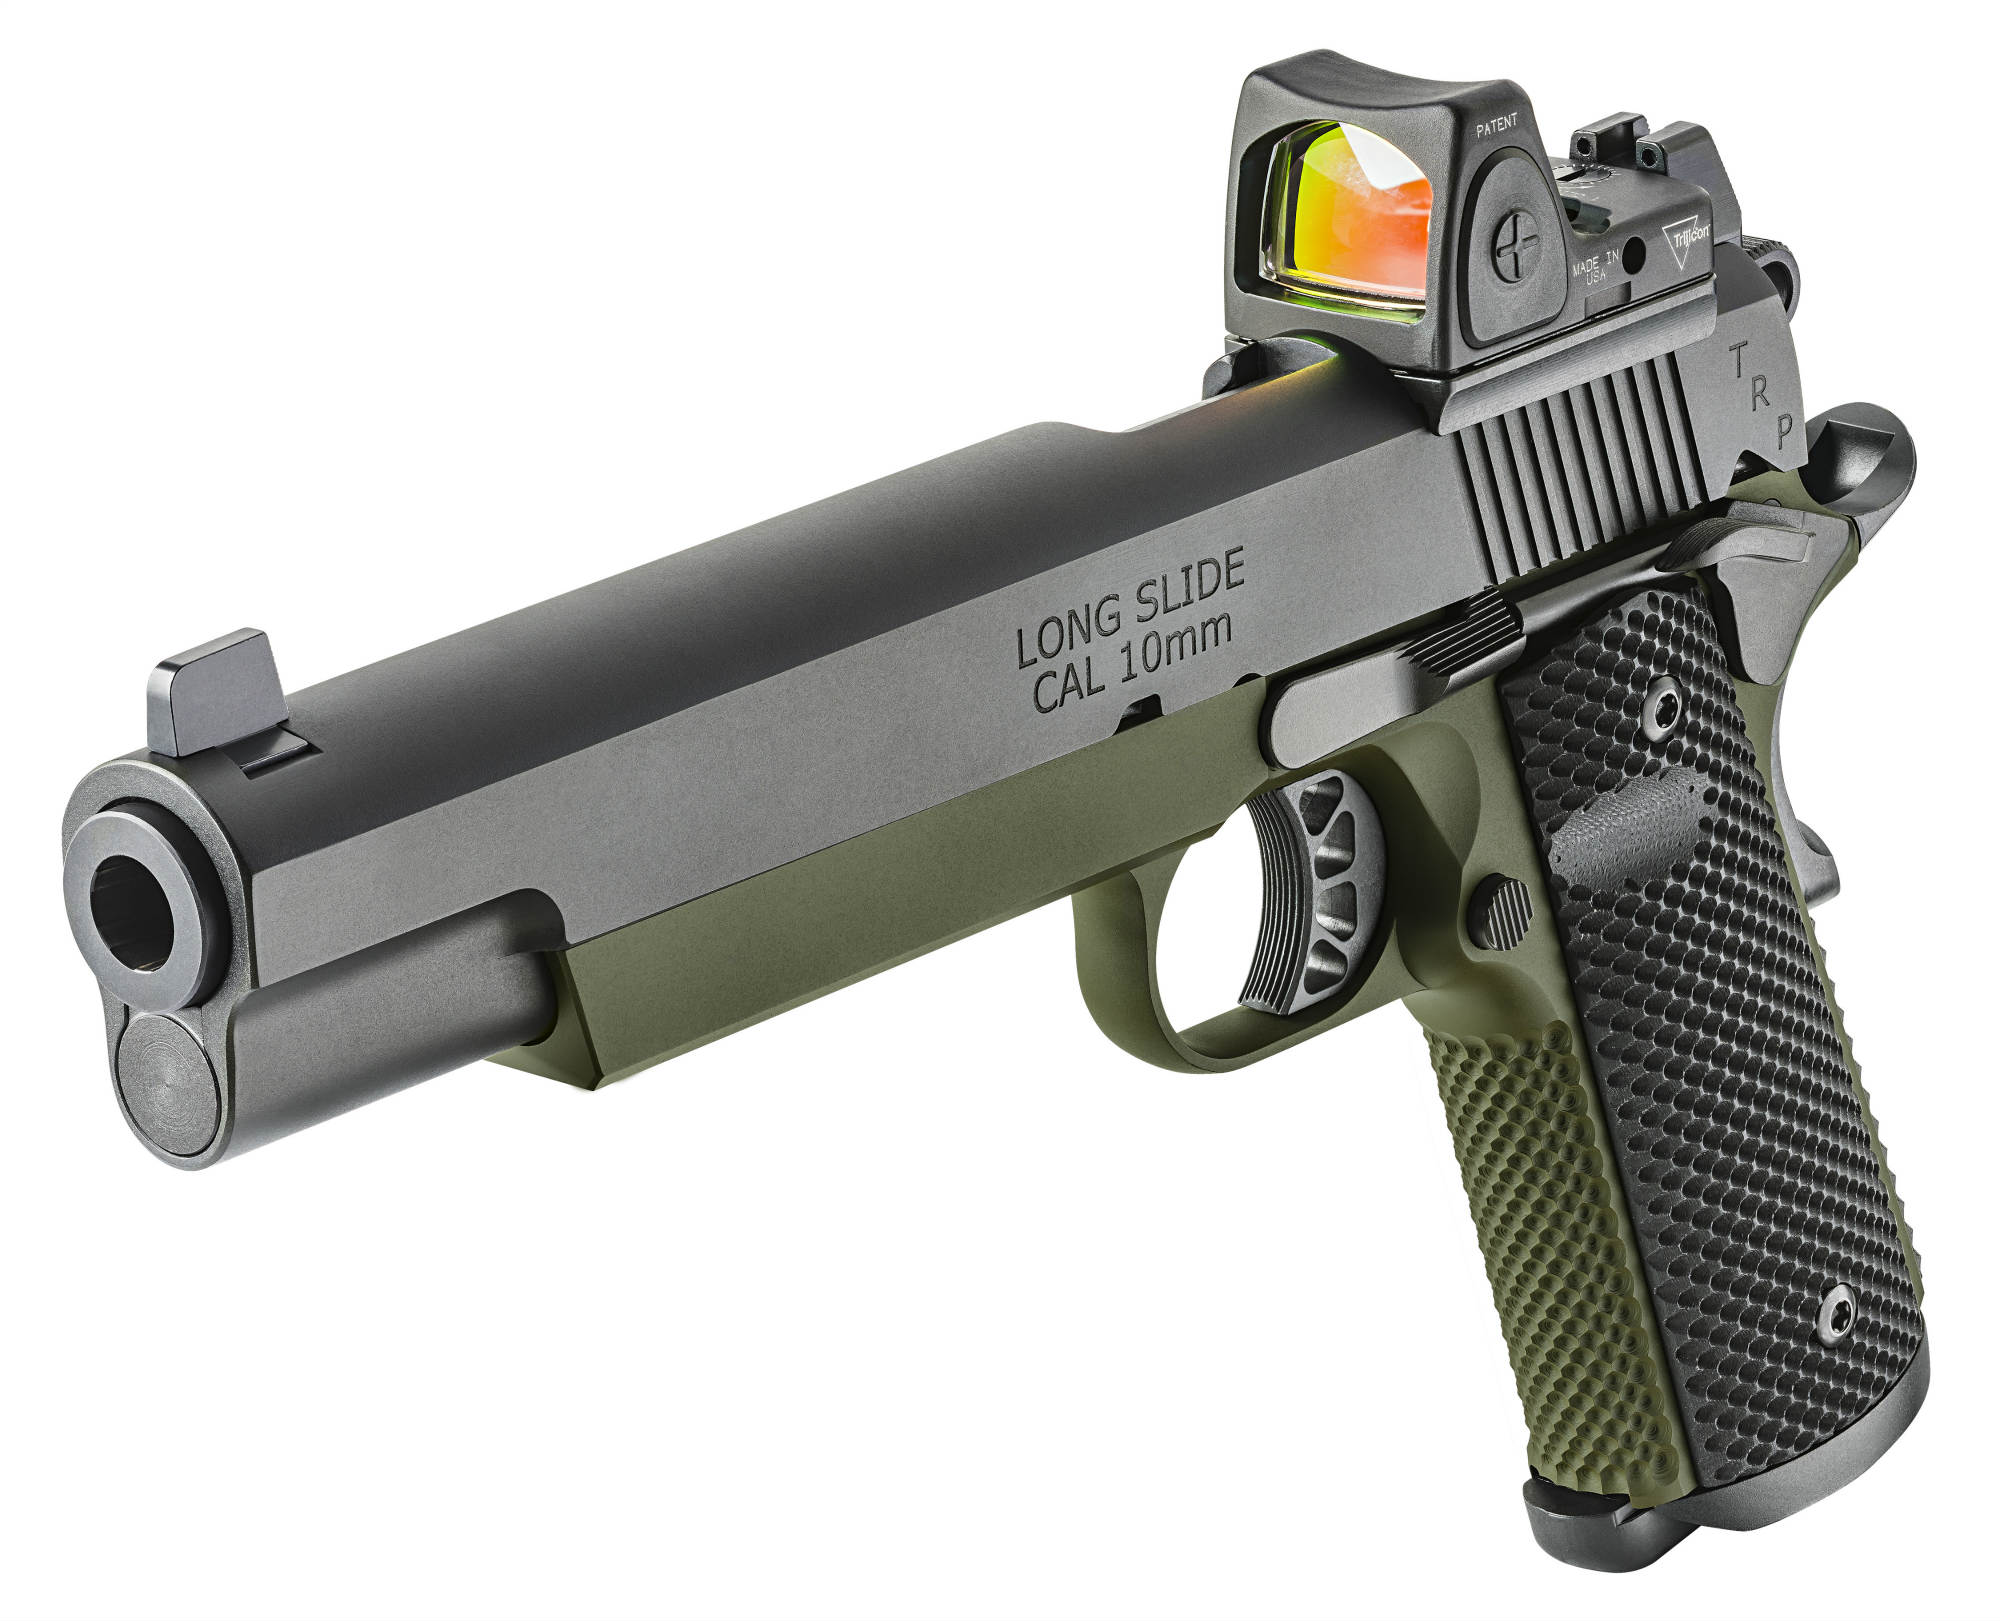 Long slide version of the Springfield Armory 1911 TRP 10mm RMR